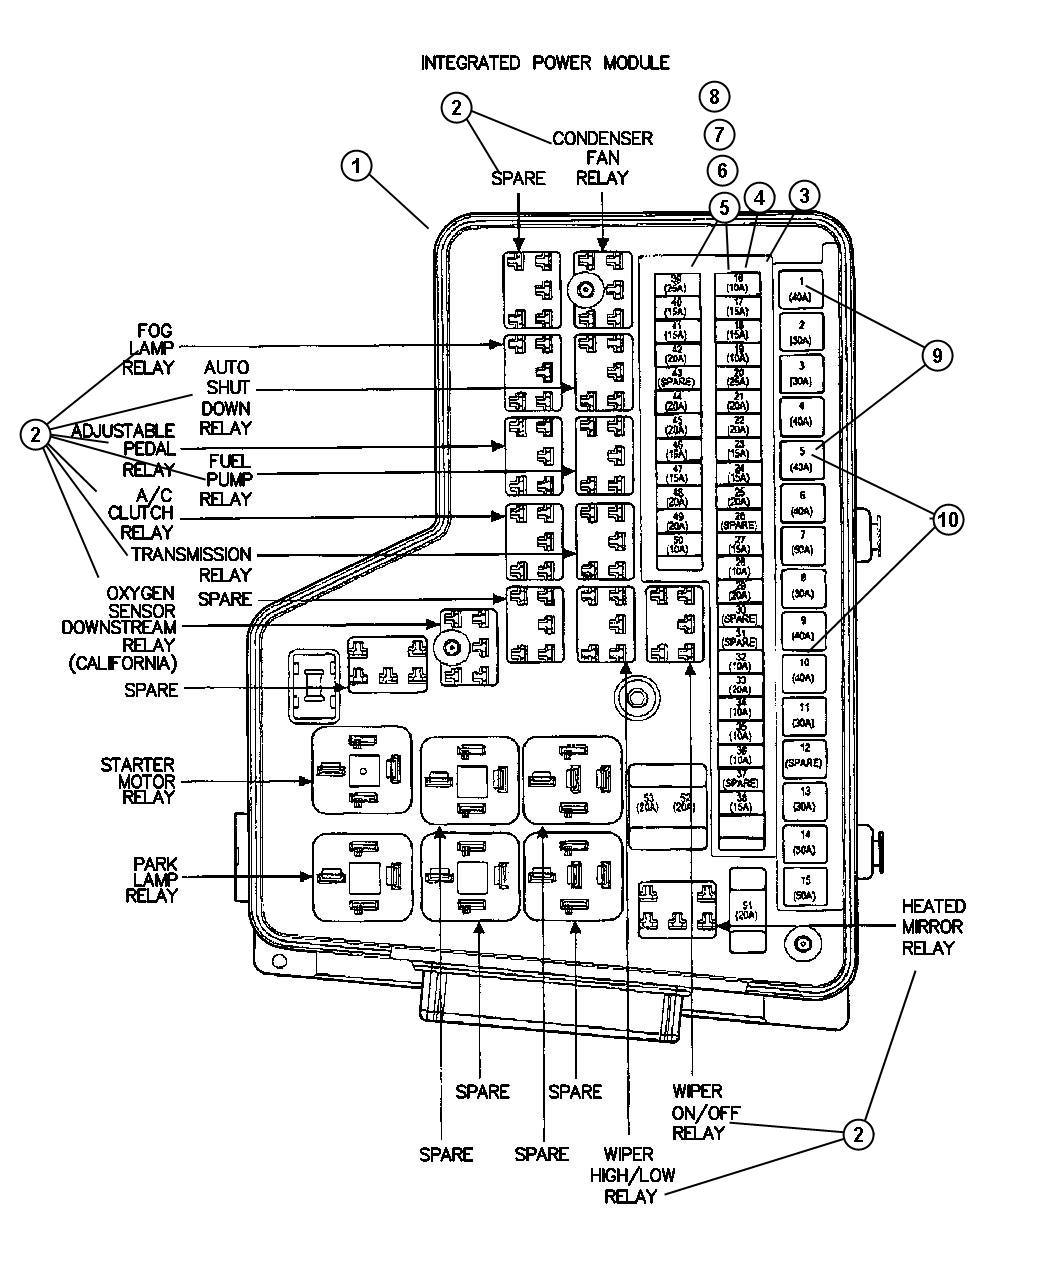 Discussion T16862 ds702861 in addition Kohler 8 Hp Motor Wiring Diagram likewise Wiring Diagram For A 1996 Ram 2500 V10 Automatic 4x4 likewise 1988 Plymouth Voyager Wiring Diagram in addition T21941584 Location camshaft positioning sensor. on wiring diagram for 2007 dodge ram stereo